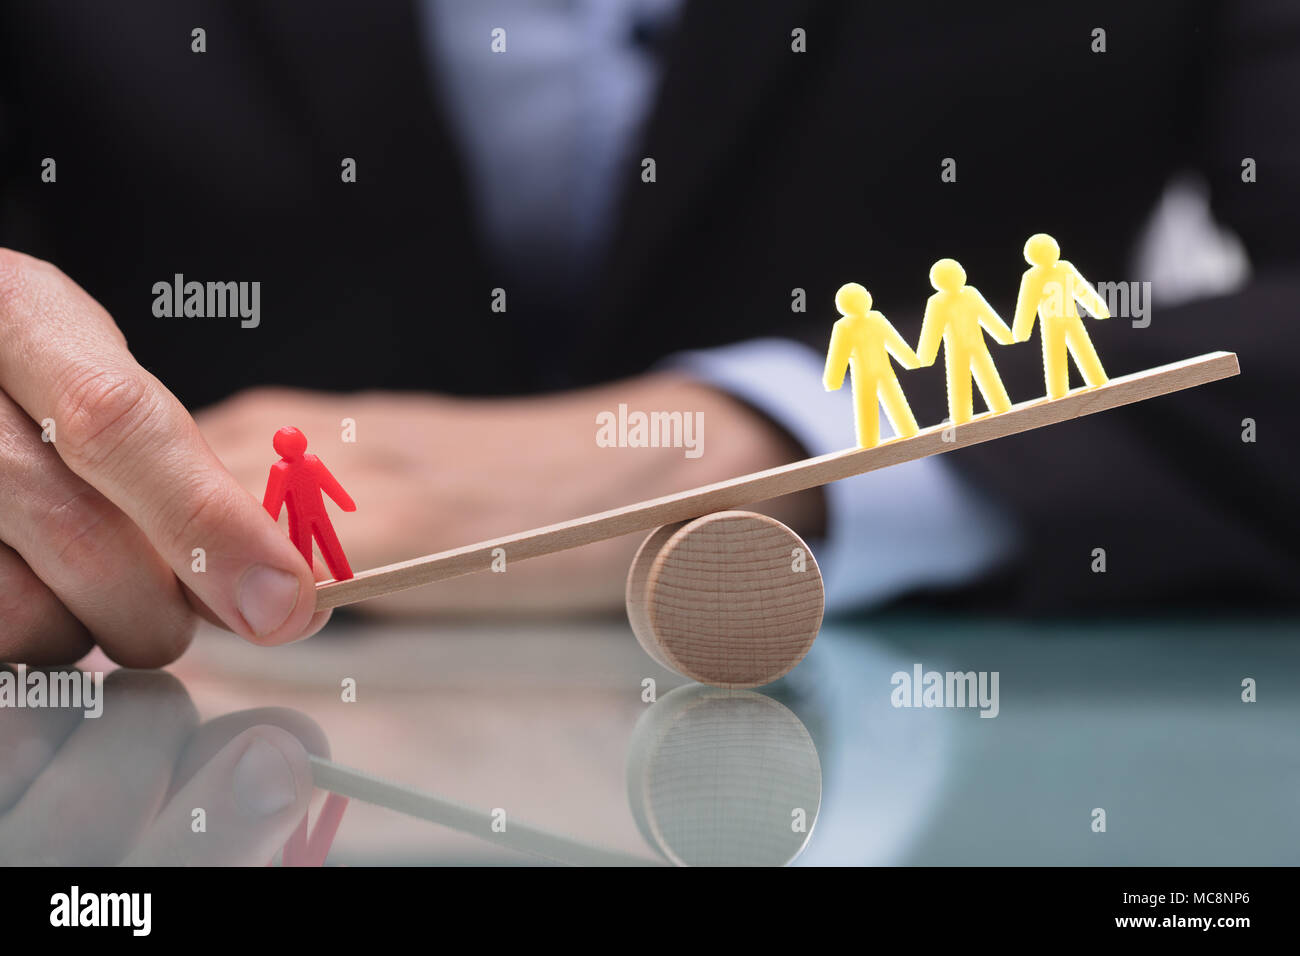 Businessperson's Hand Showing Imbalance Between Red Figure And Three Yellow Figures On Seesaw Stock Photo